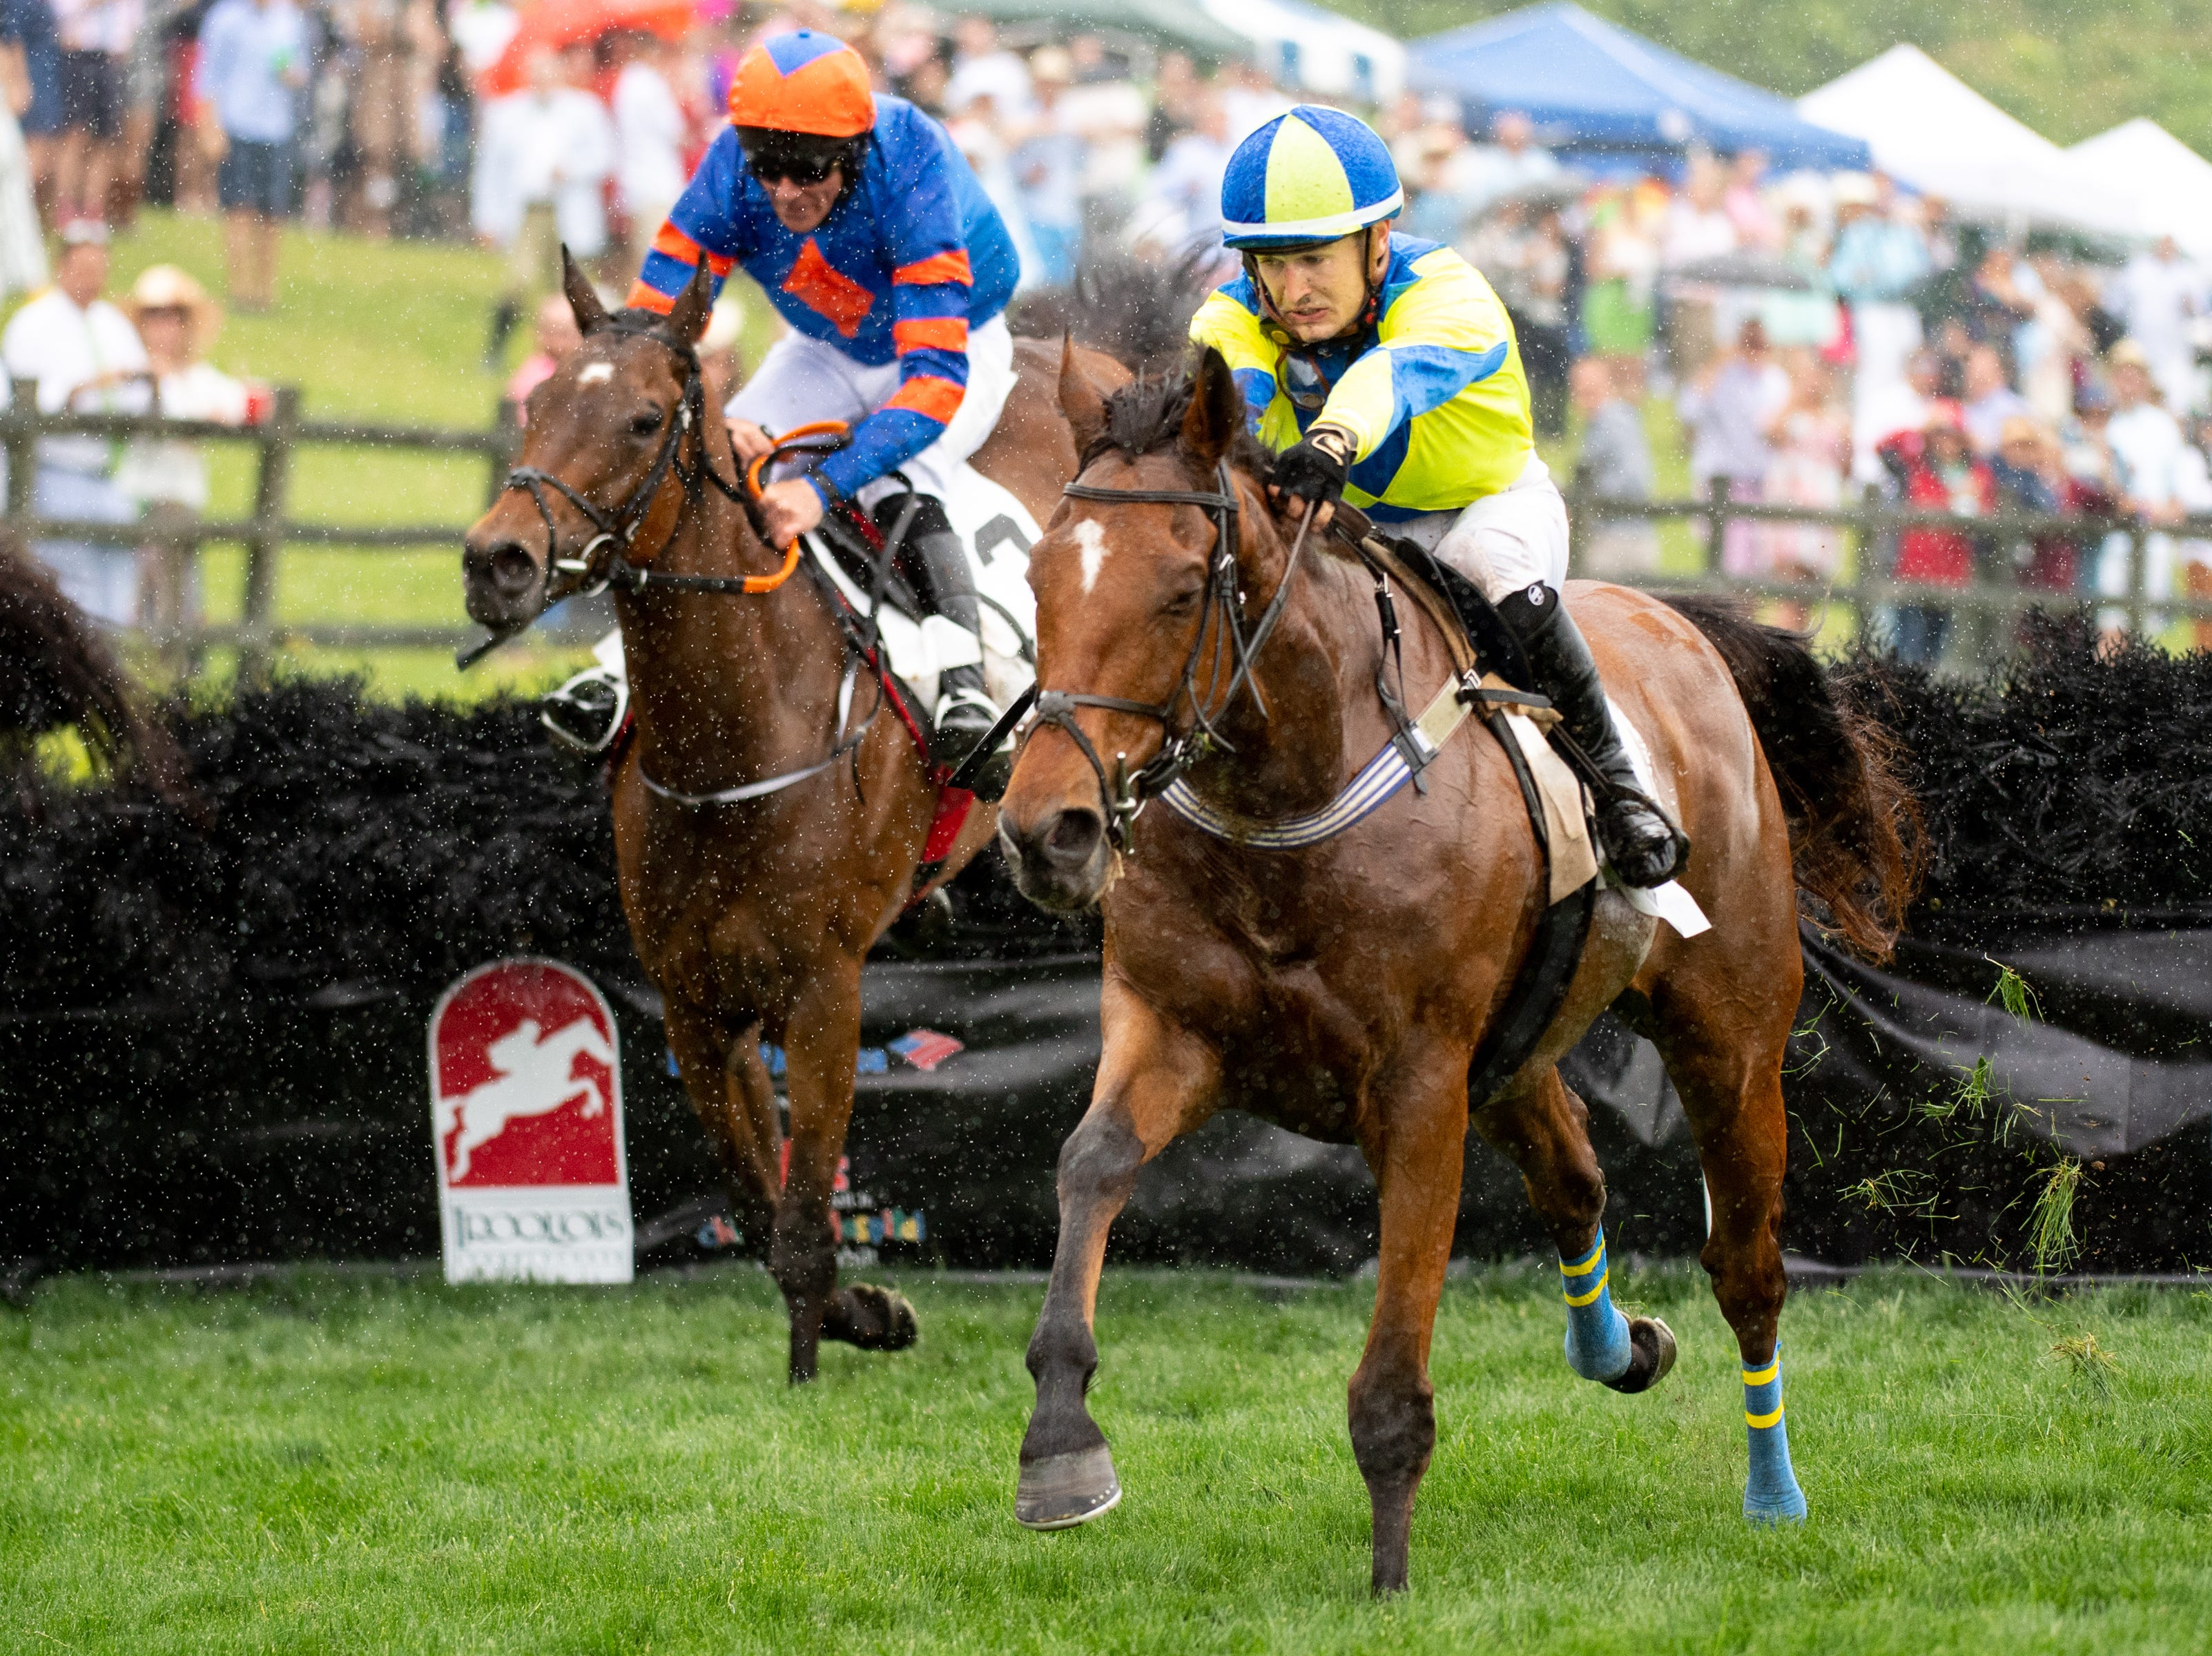 Michael Mitchell and Lord Justice, right, speed ahead from Jack Kennedy and Stooshie during the second race of the Iroquois Steeplechase at Percy Warner Park Saturday, May 11, 2019, in Nashville, Tenn.